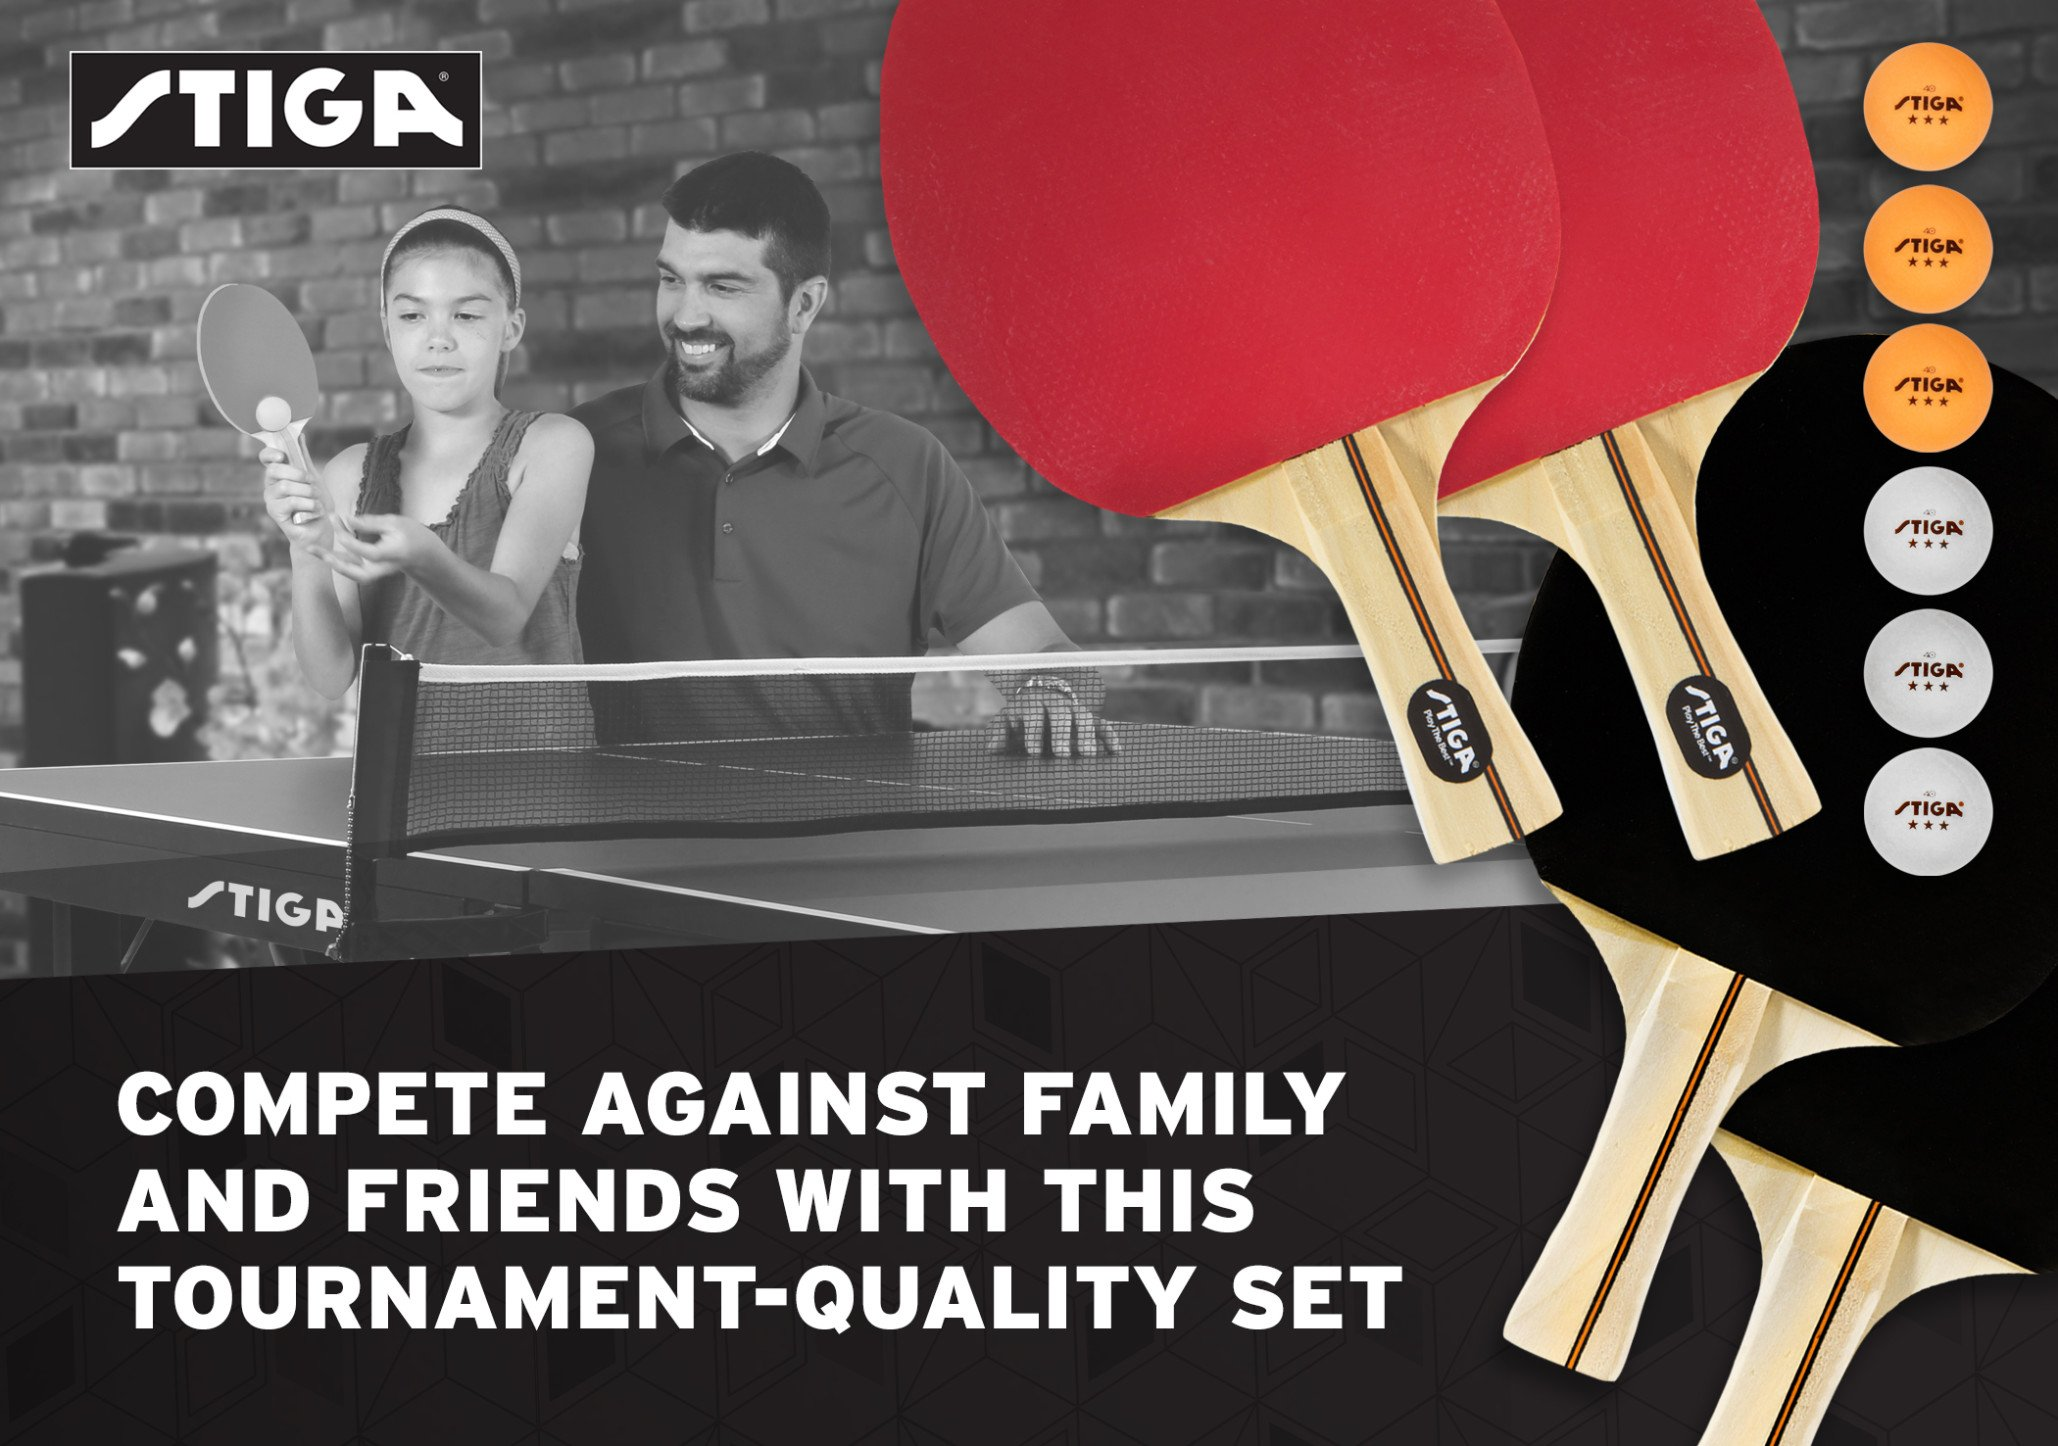 STIGA Performance 4-Player Table Tennis Racket Set with Inverted Rubber for Increased Ball Control and Added Spin by STIGA (Image #7)